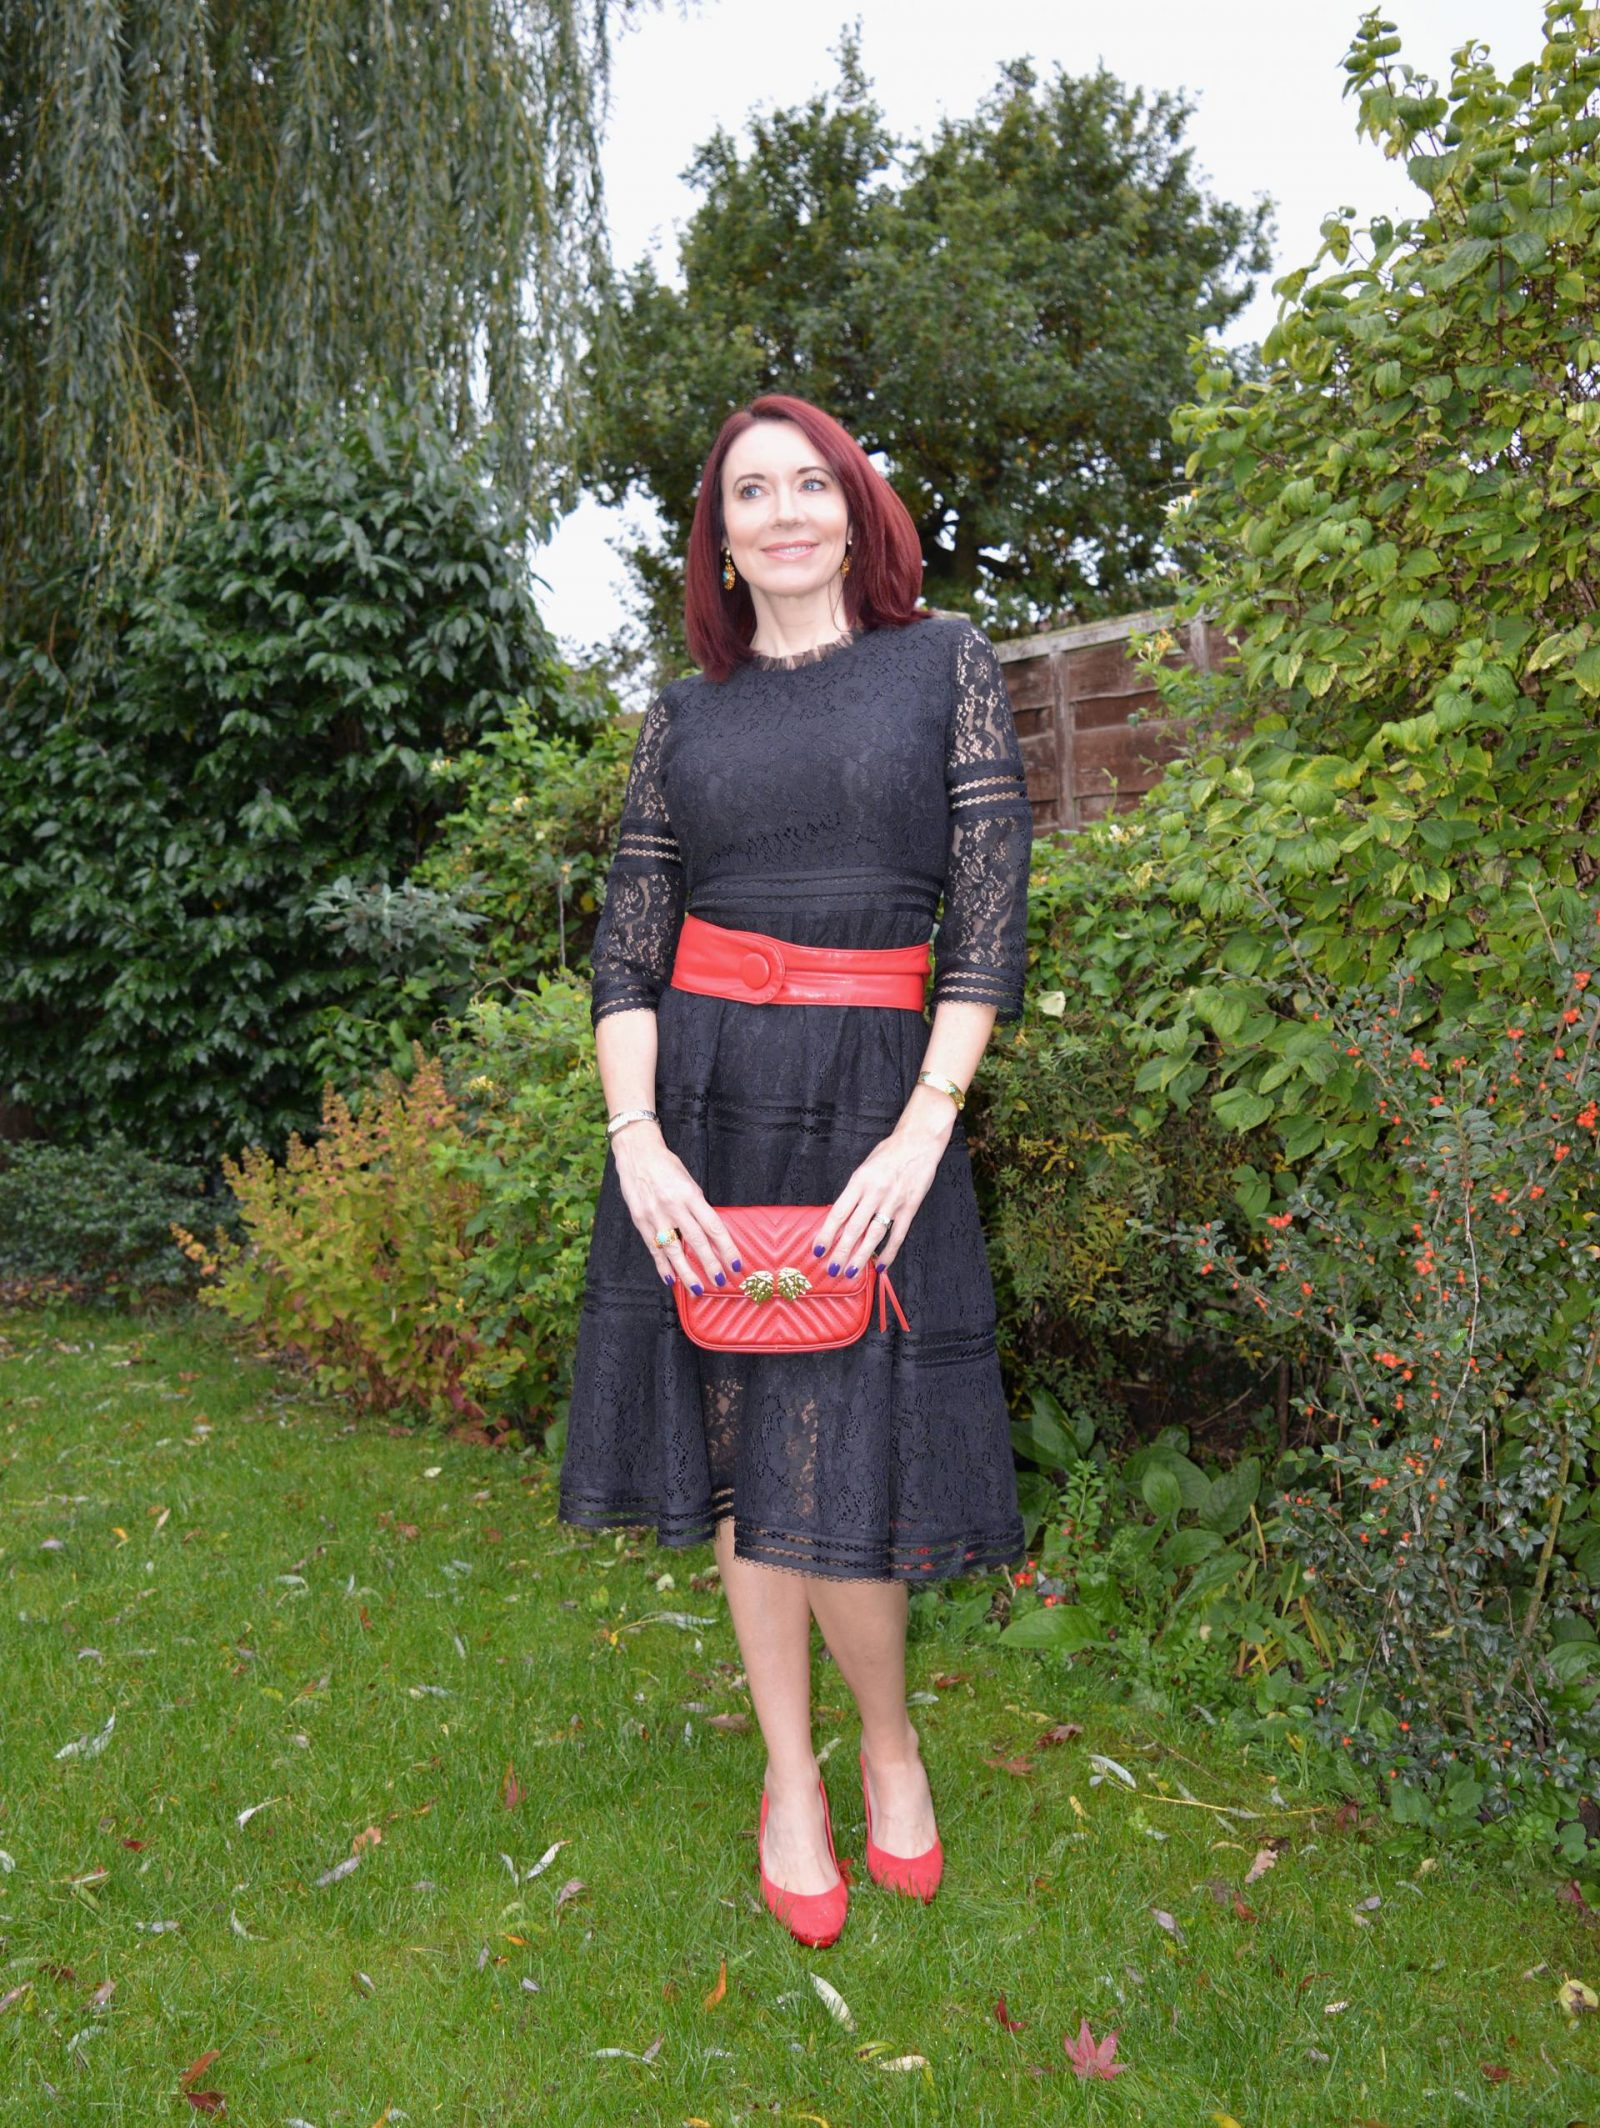 b2849ae8dfc Black lace dress with red accessories + link up